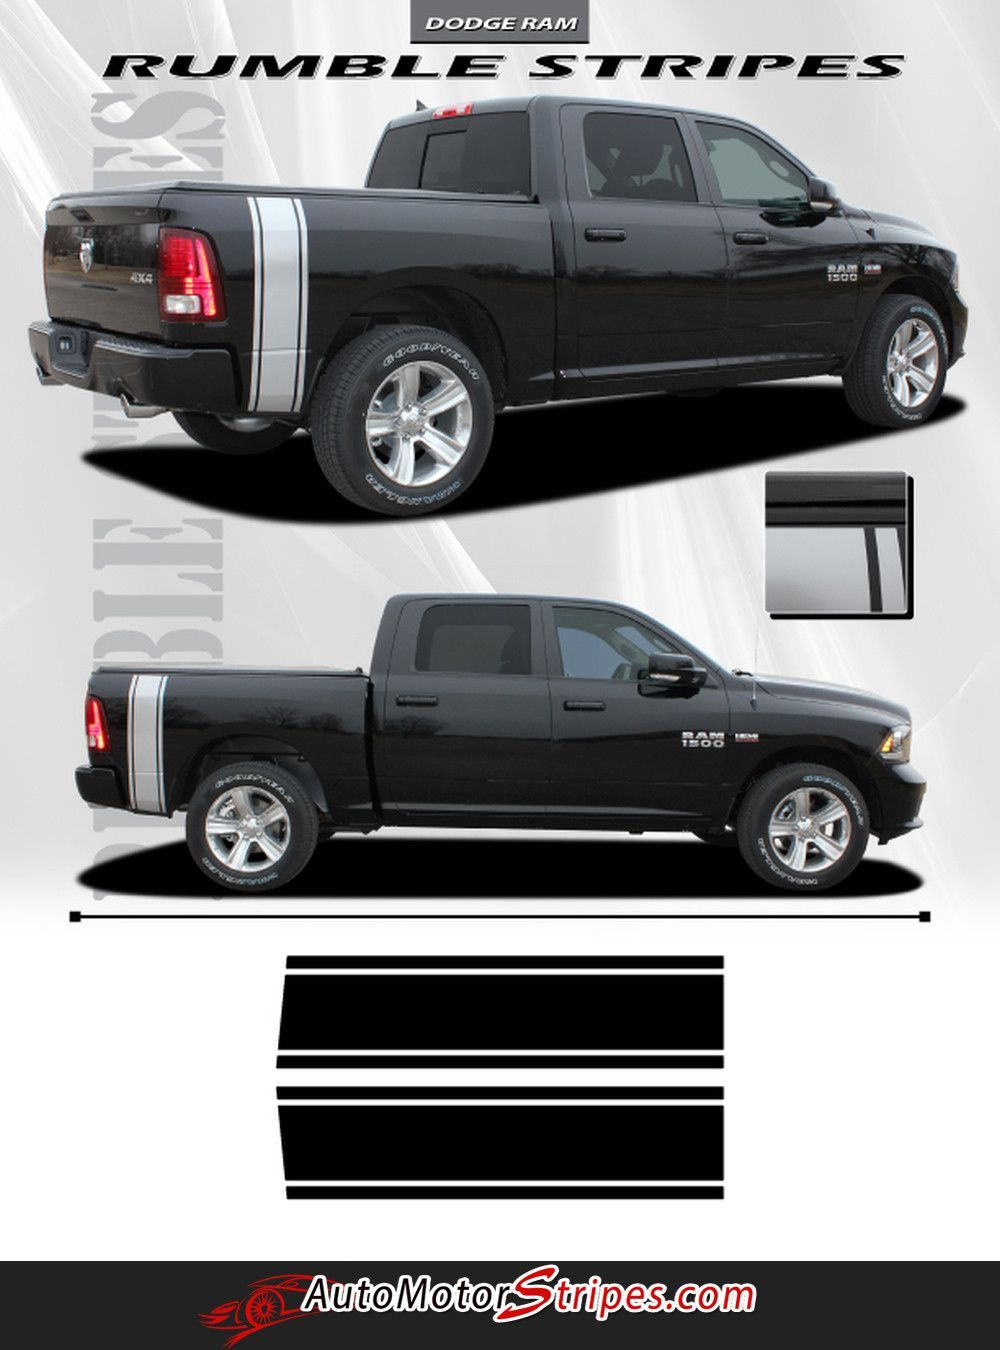 medium resolution of vehicle specific style dodge ram truck rumble bee bed striping vinyl graphic stripe decals year fitment 2009 2010 2011 2012 2013 2014 2015 2016 contents